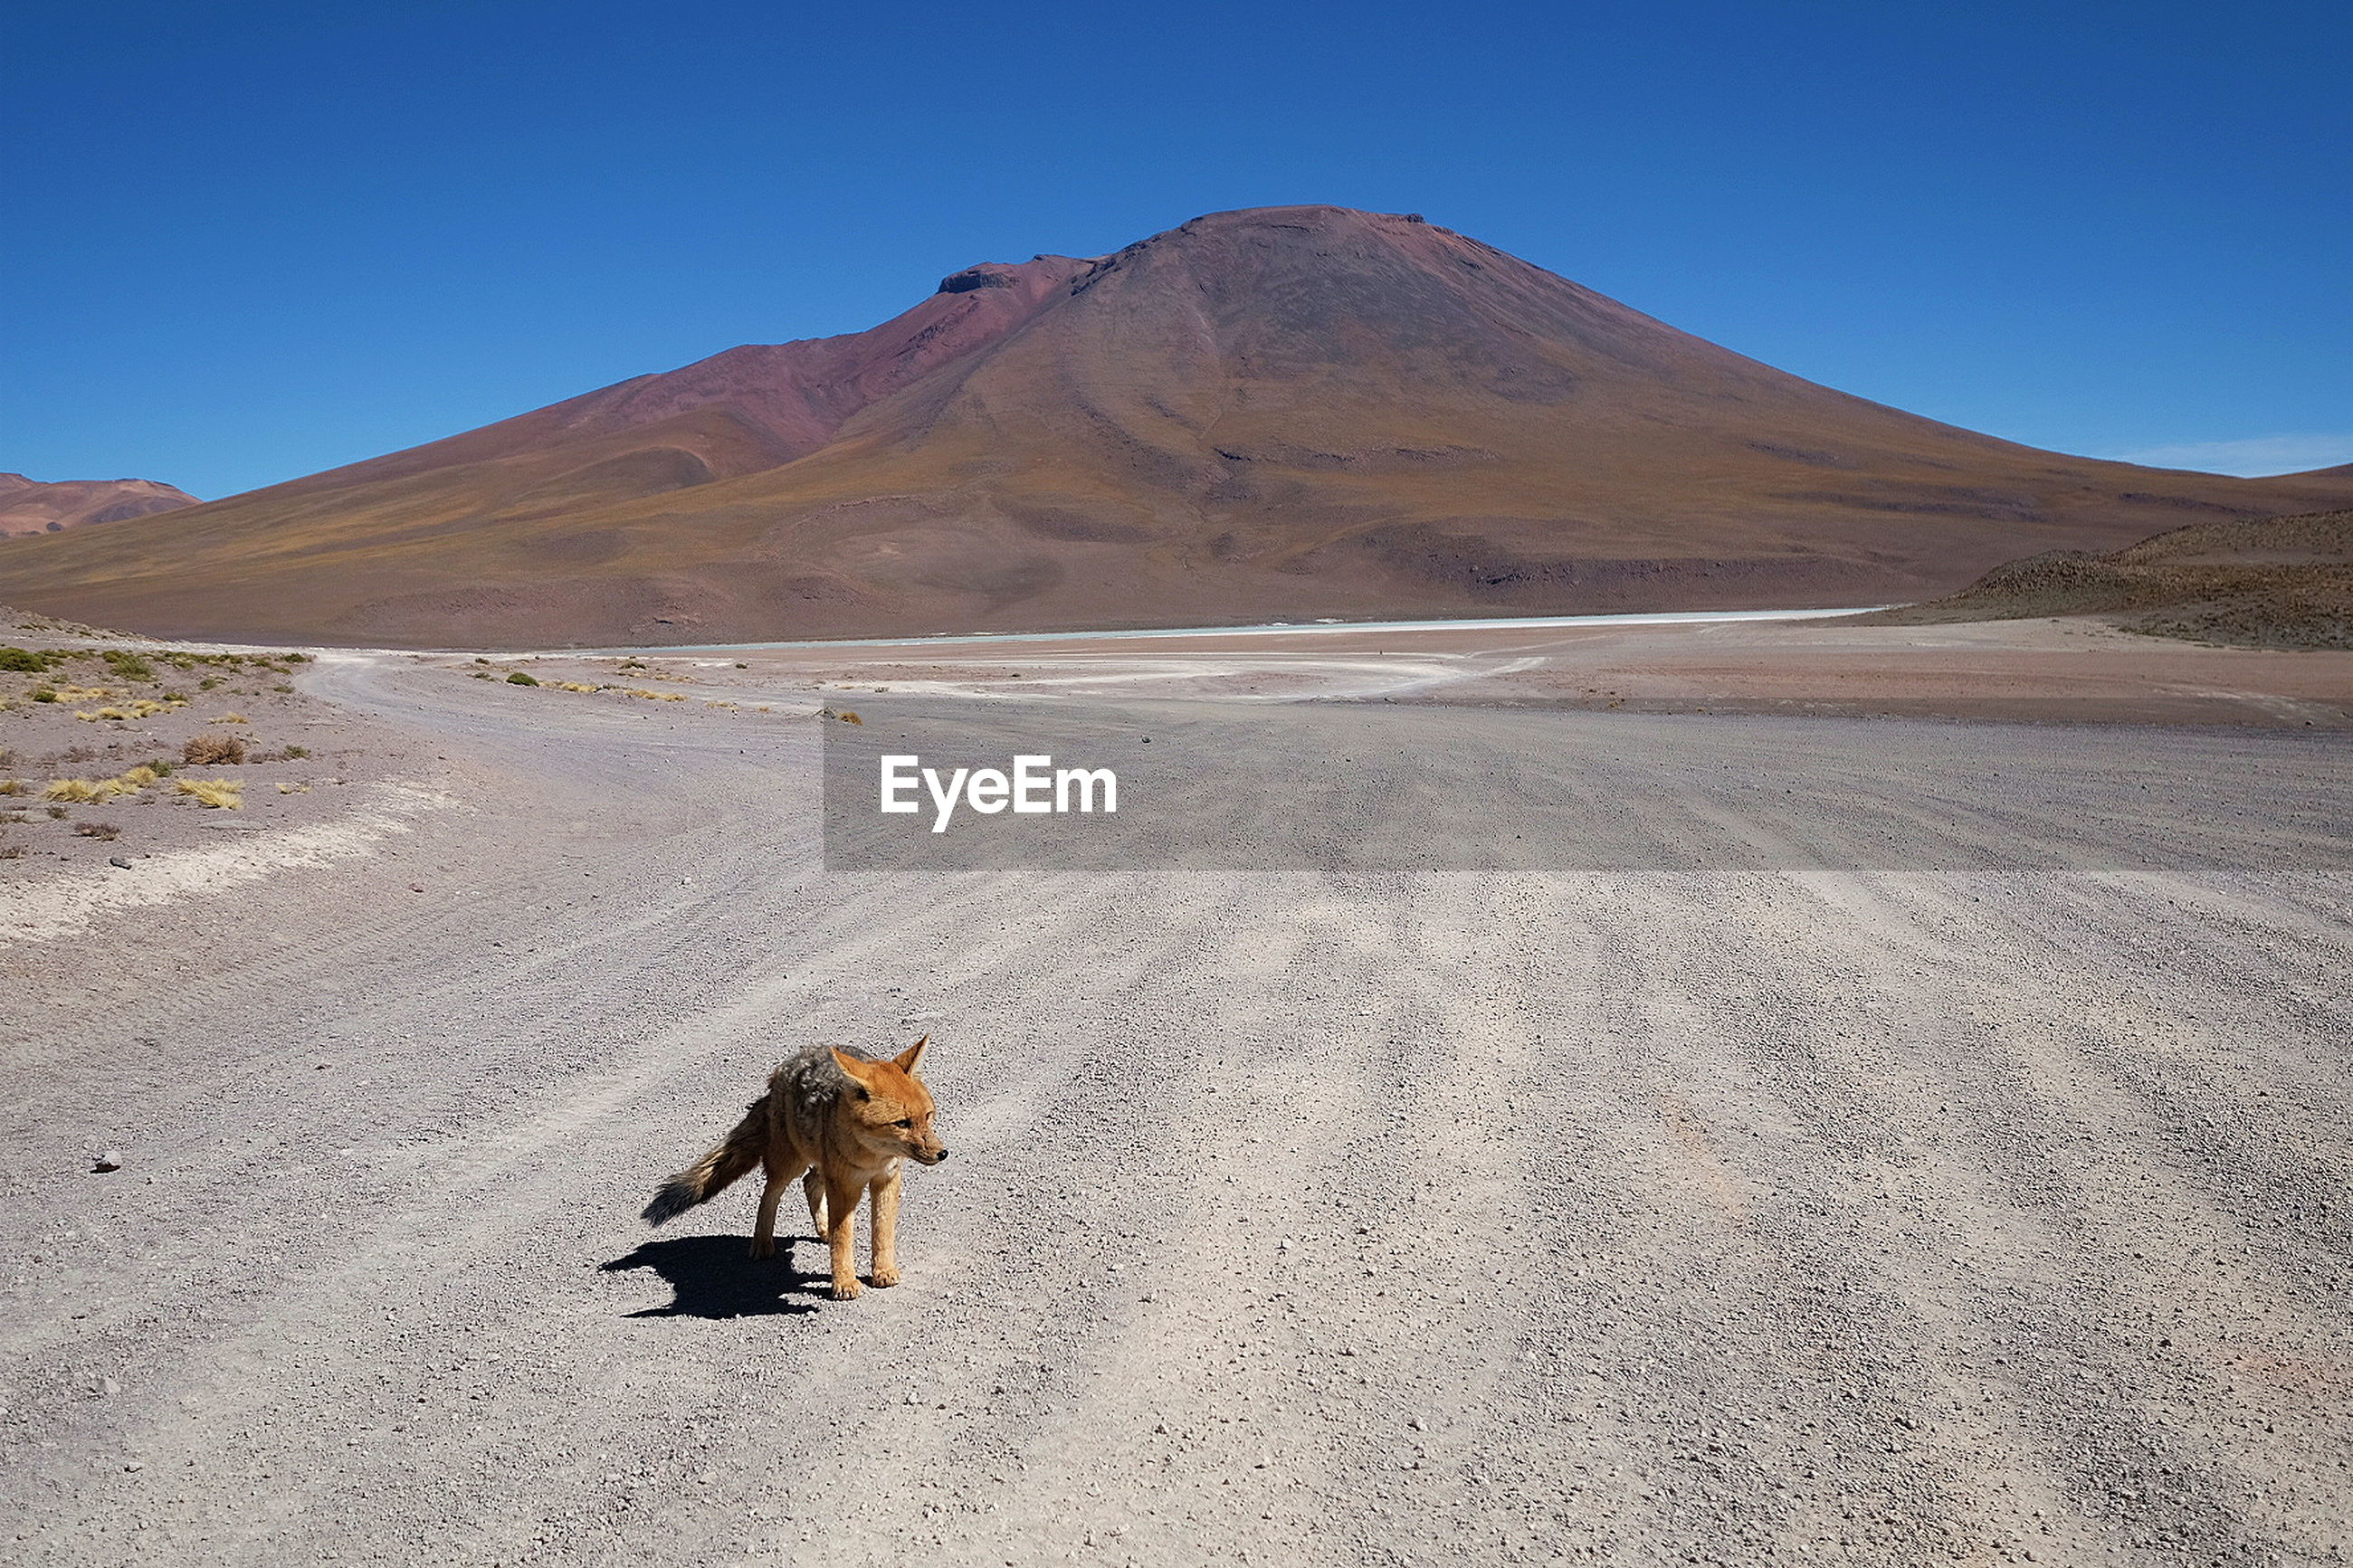 Fox standing on sand against clear sky